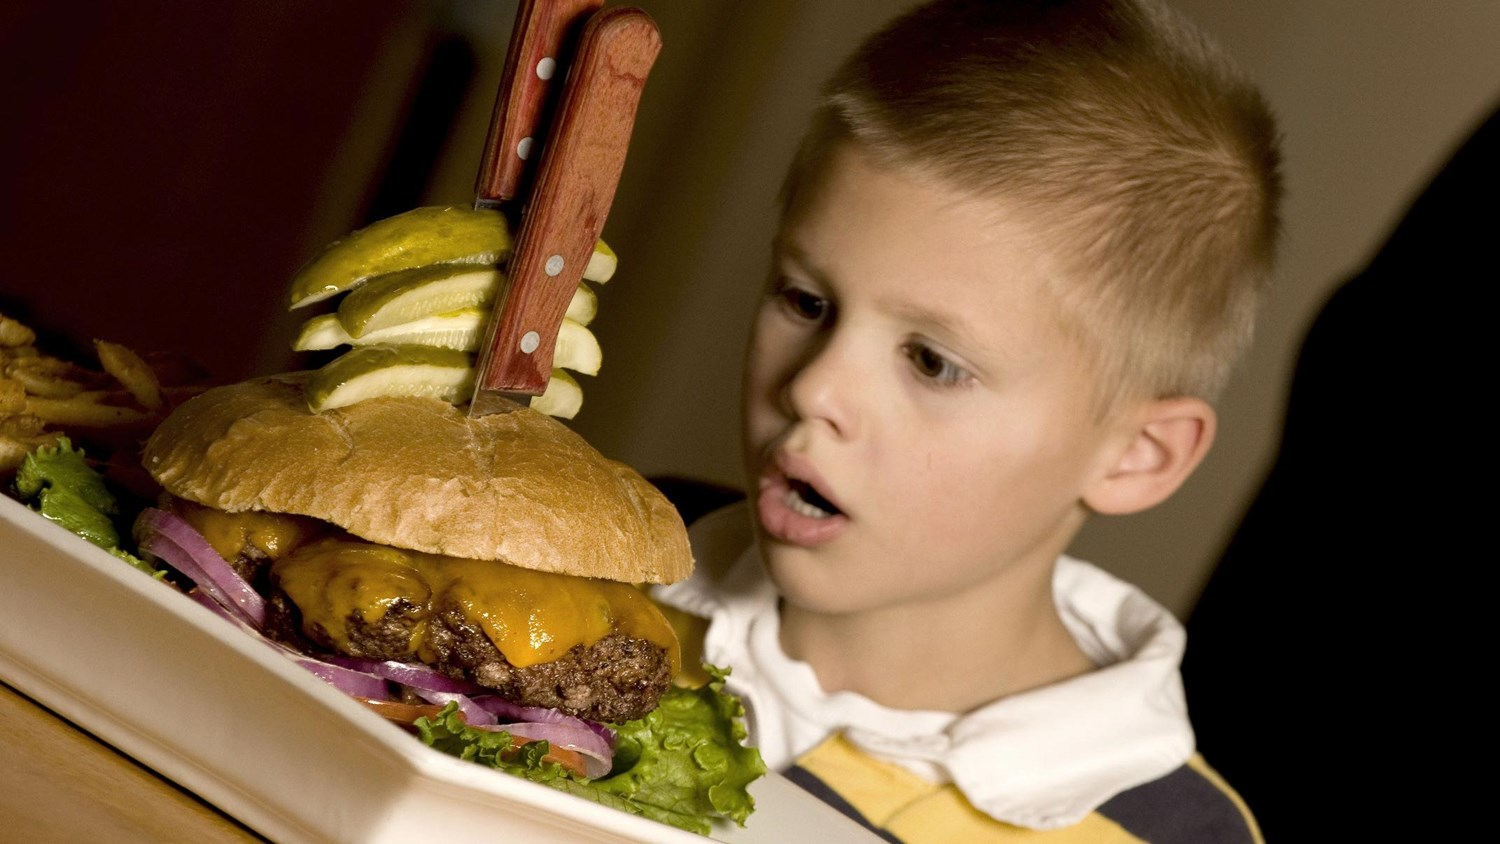 Boy with a surprising look gazing at the big cheeseburger